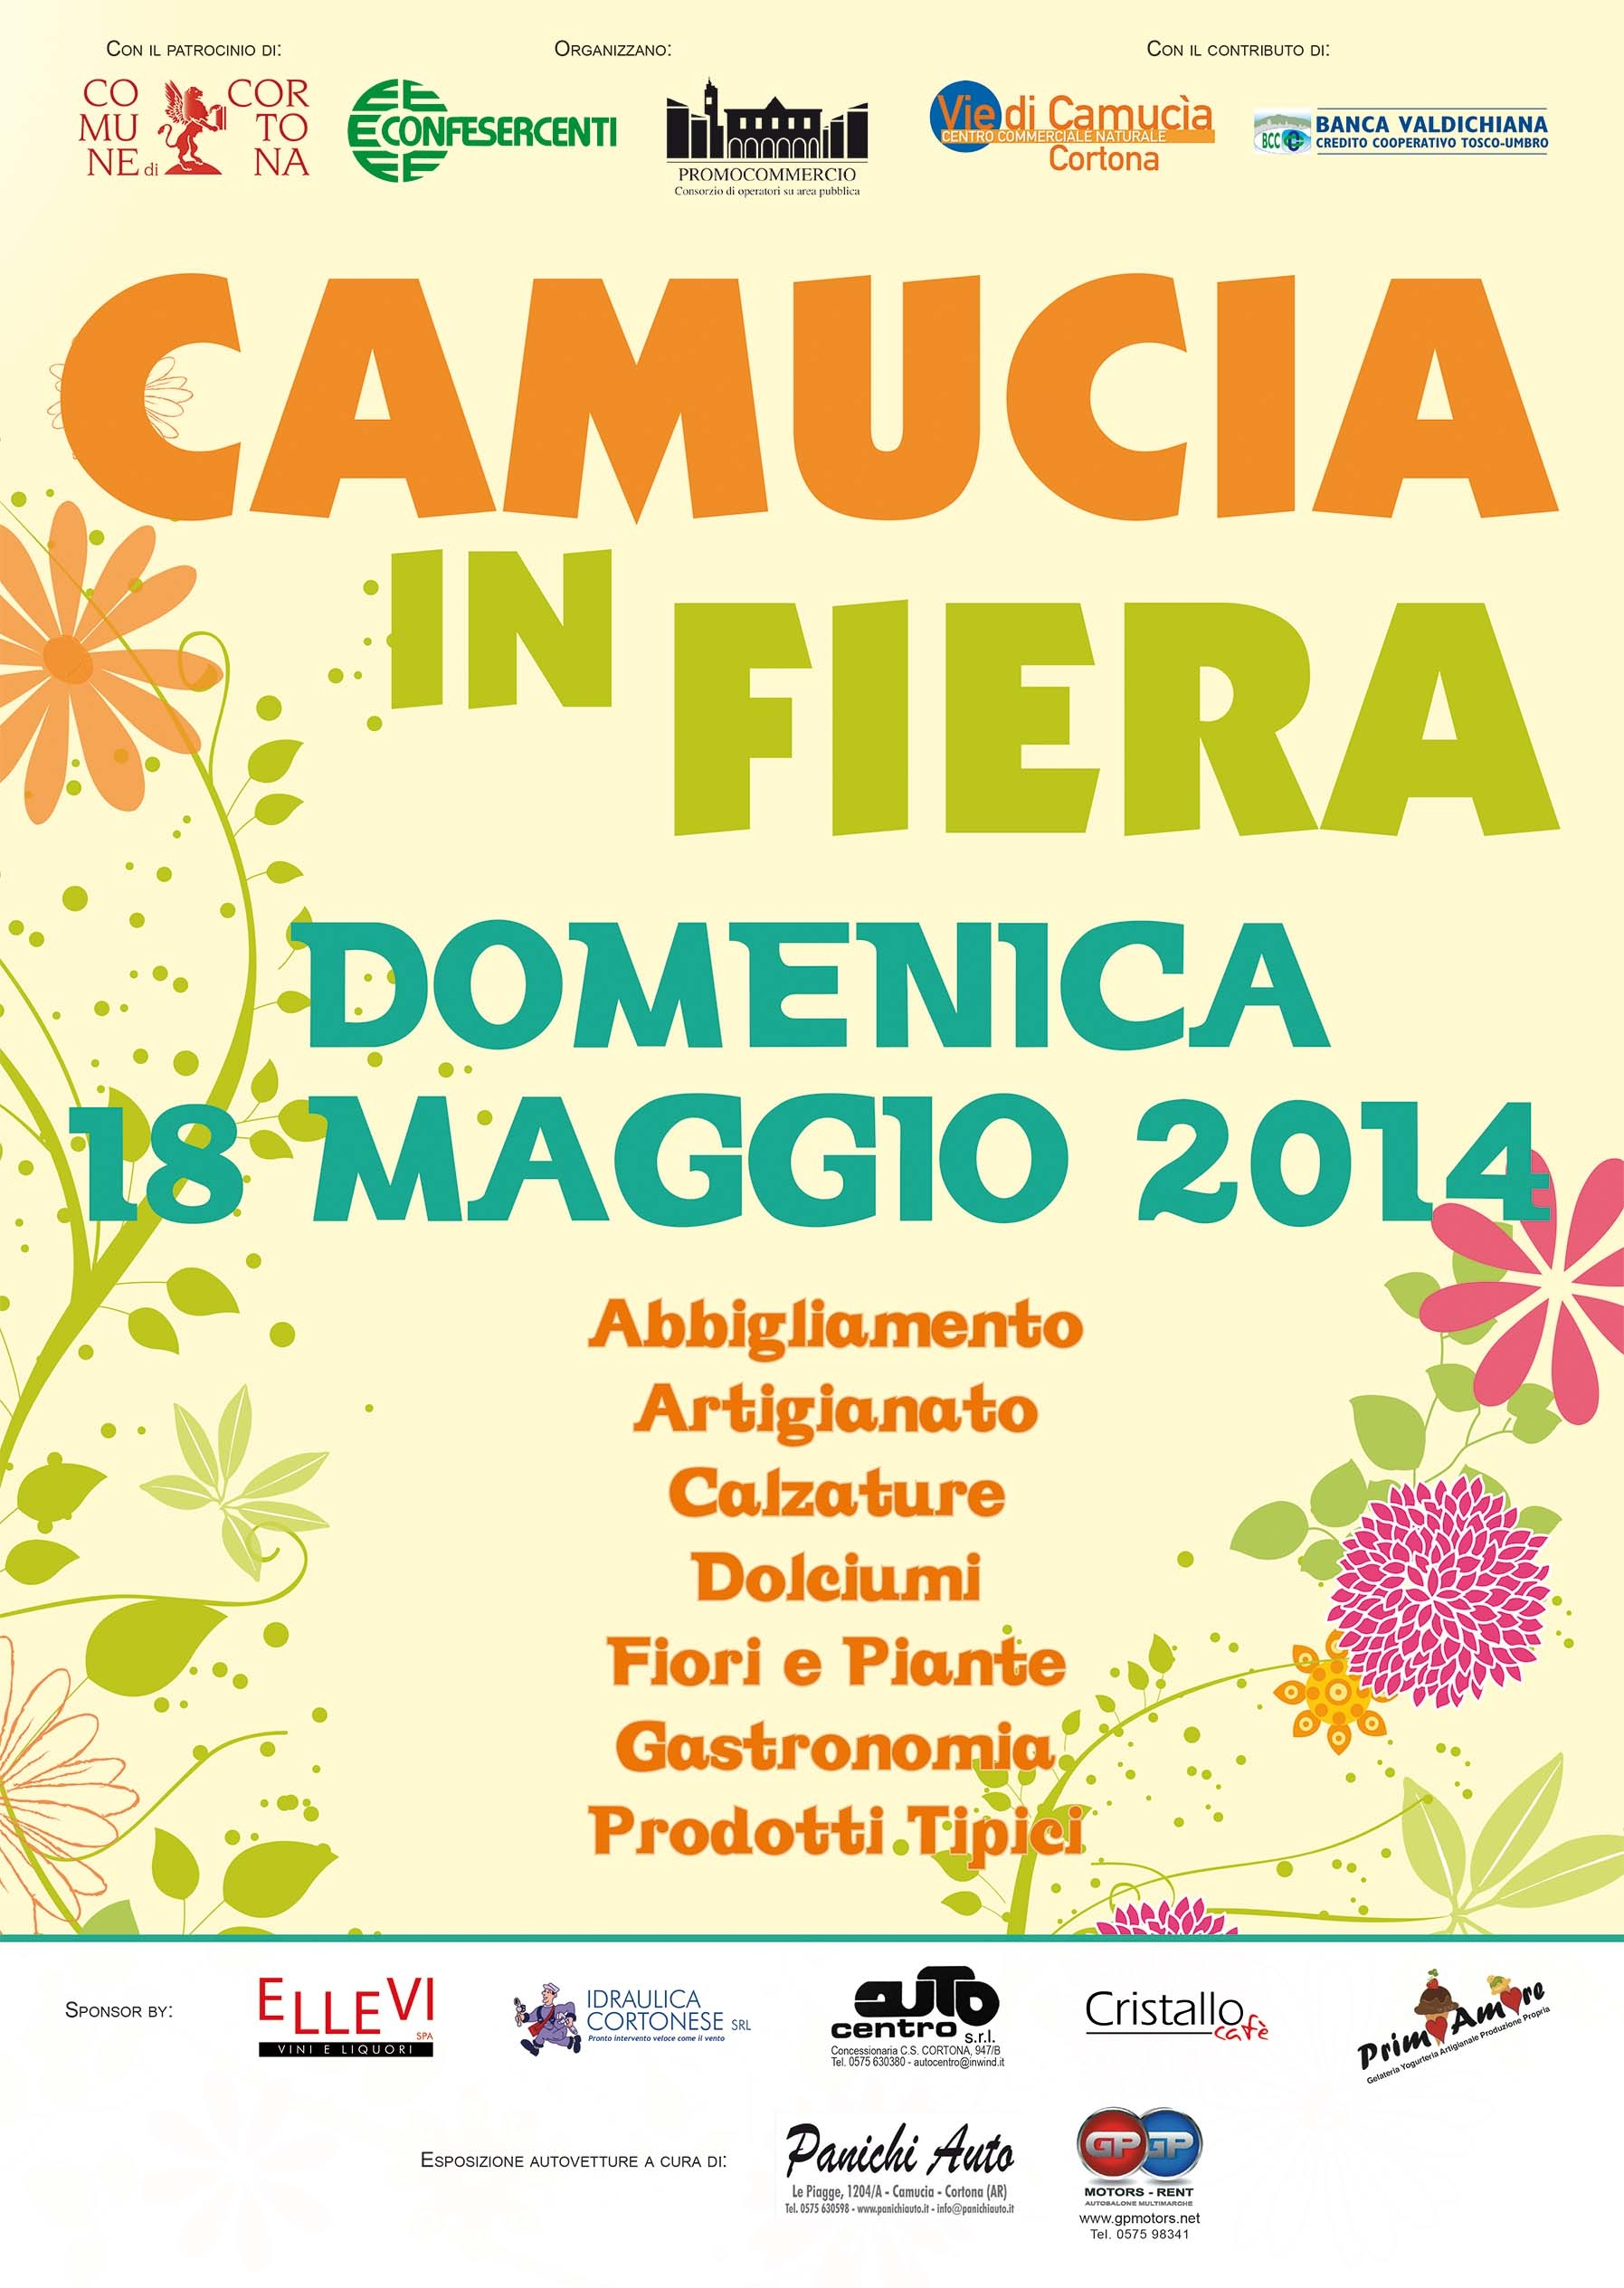 Camucia in Fiera: una domenica di divertimento e shopping